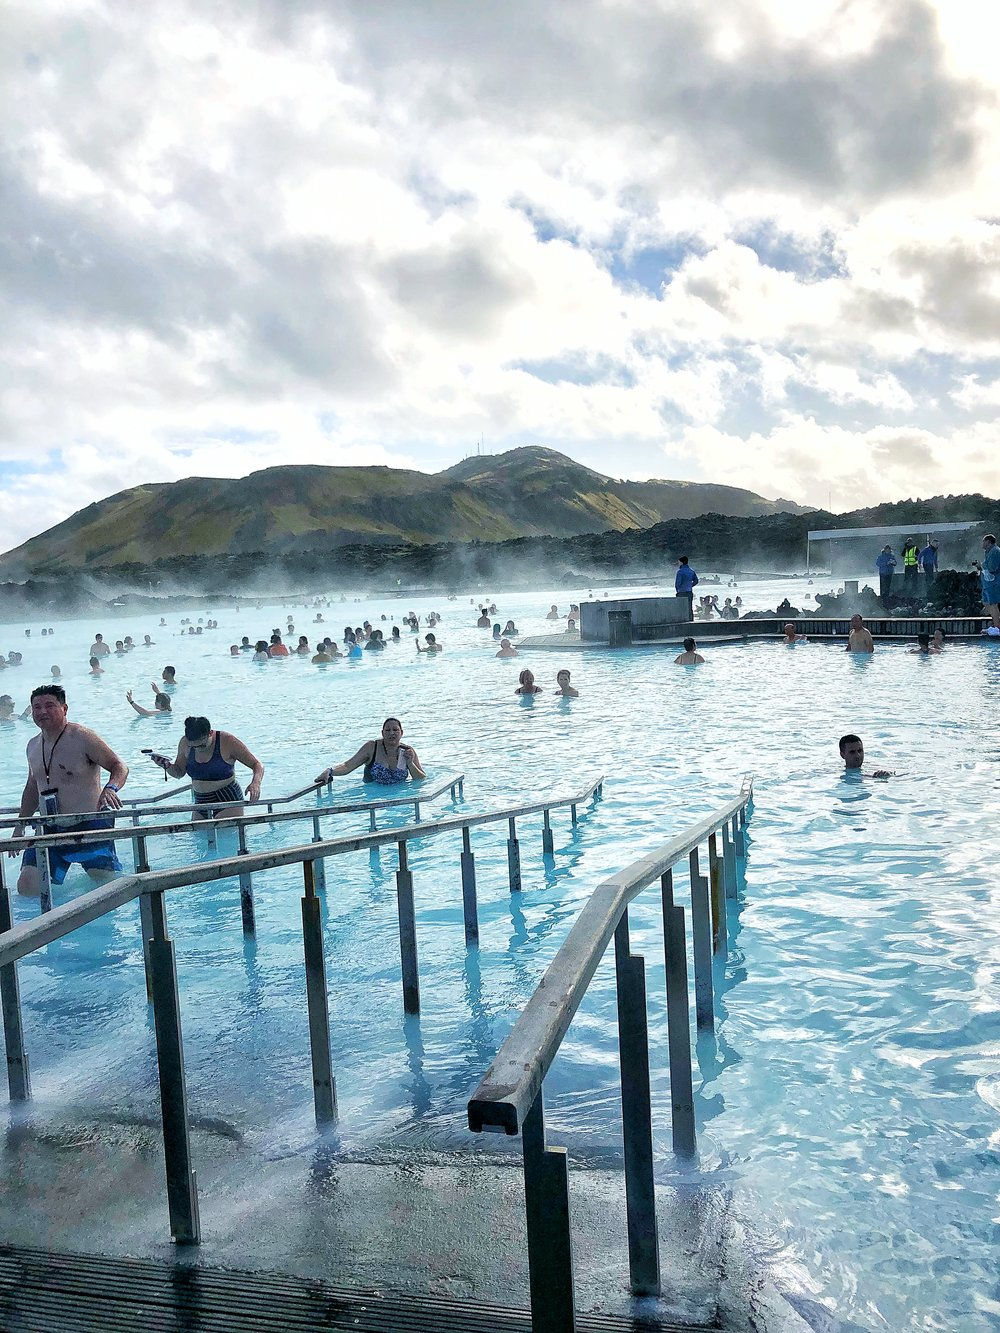 The Blue Lagoon